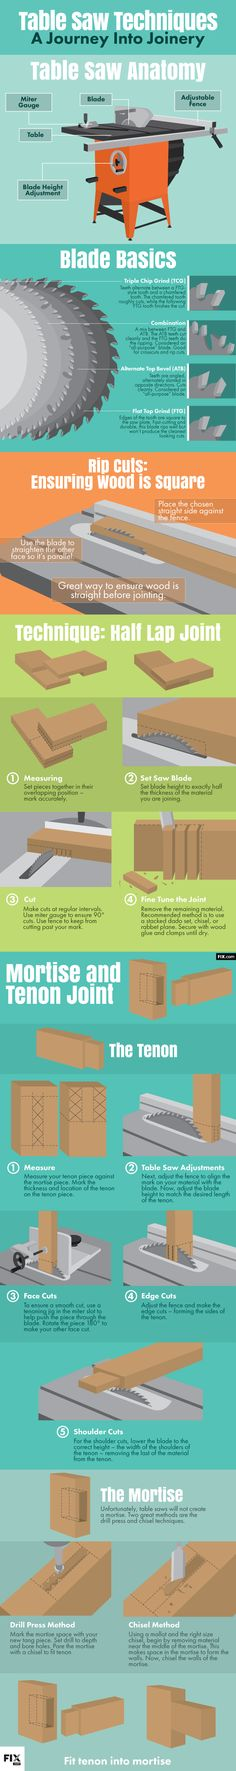 Table Saw Techniques A Journey Into Joinery #infographic